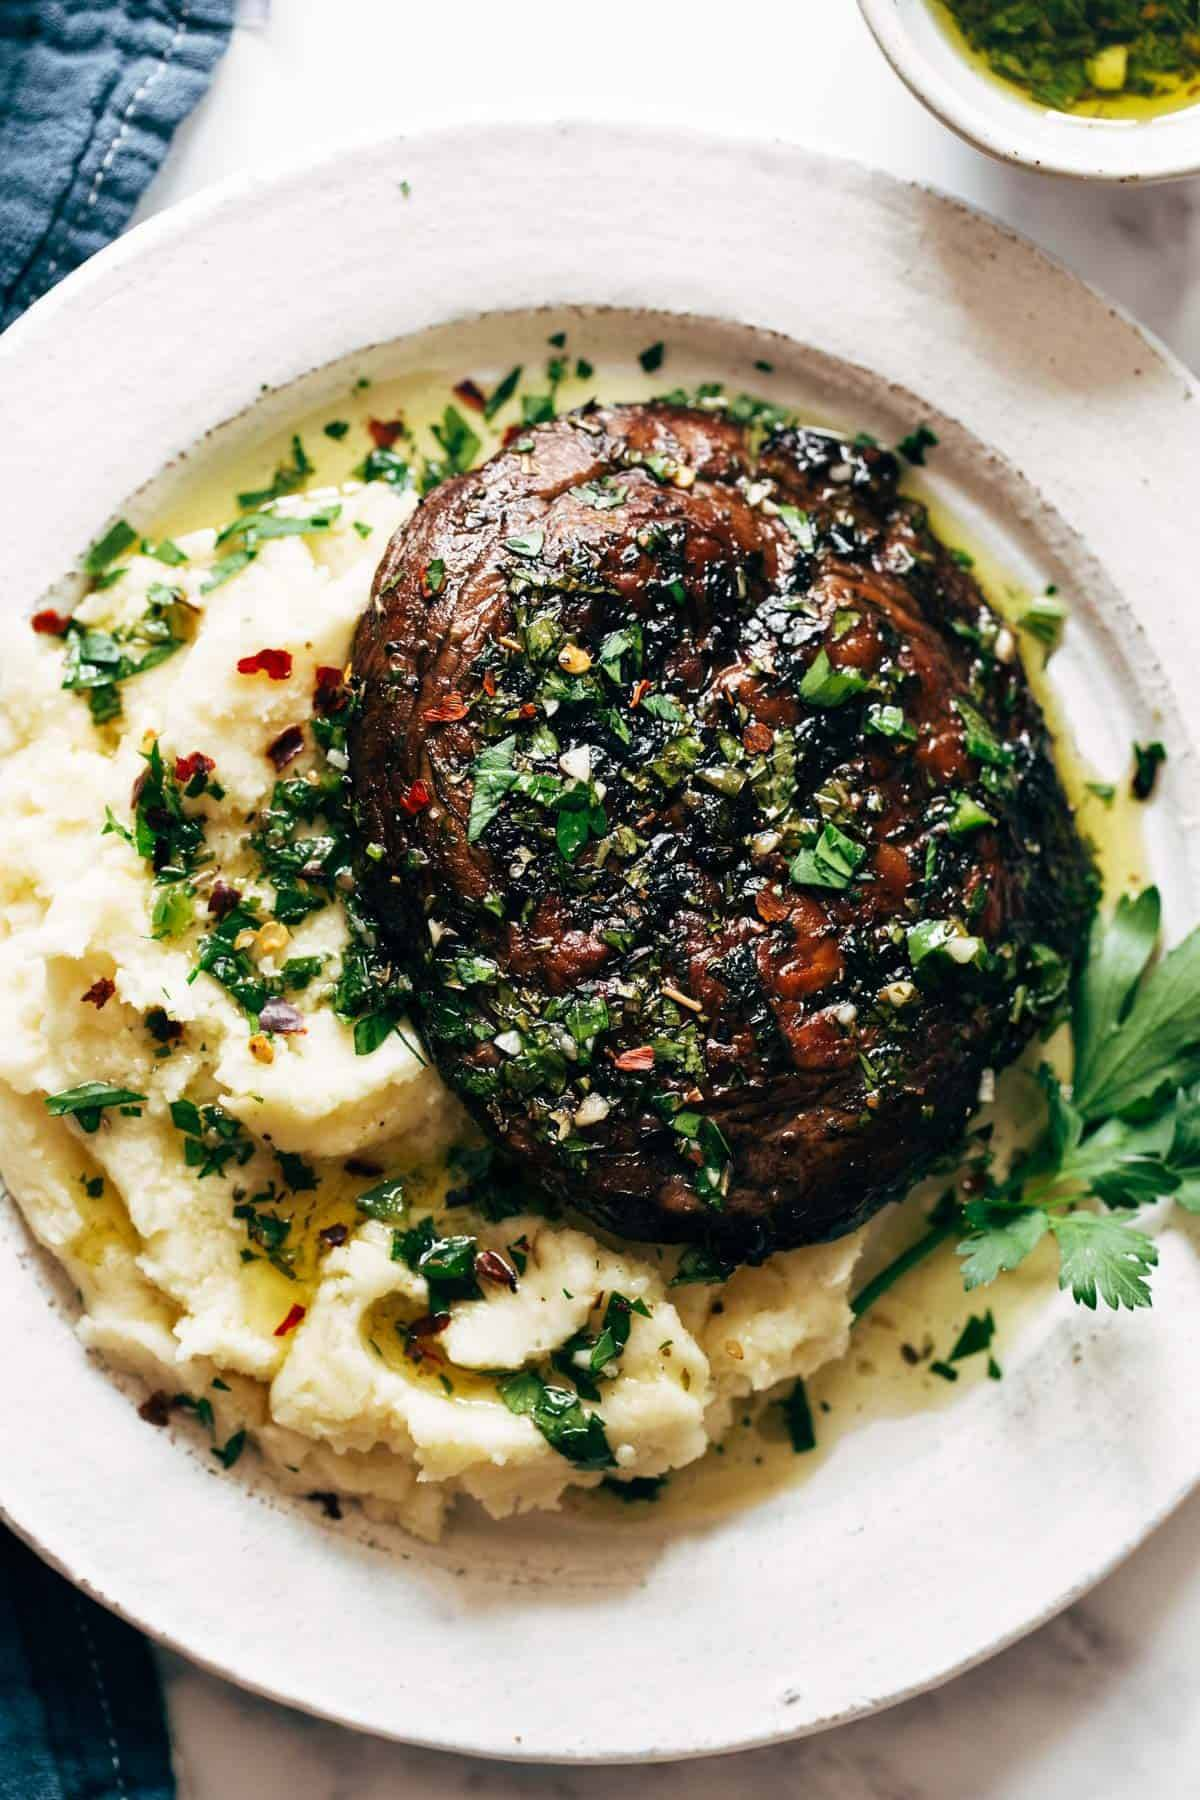 Grilled portobello mushroom on goat cheese mashed potatoes.